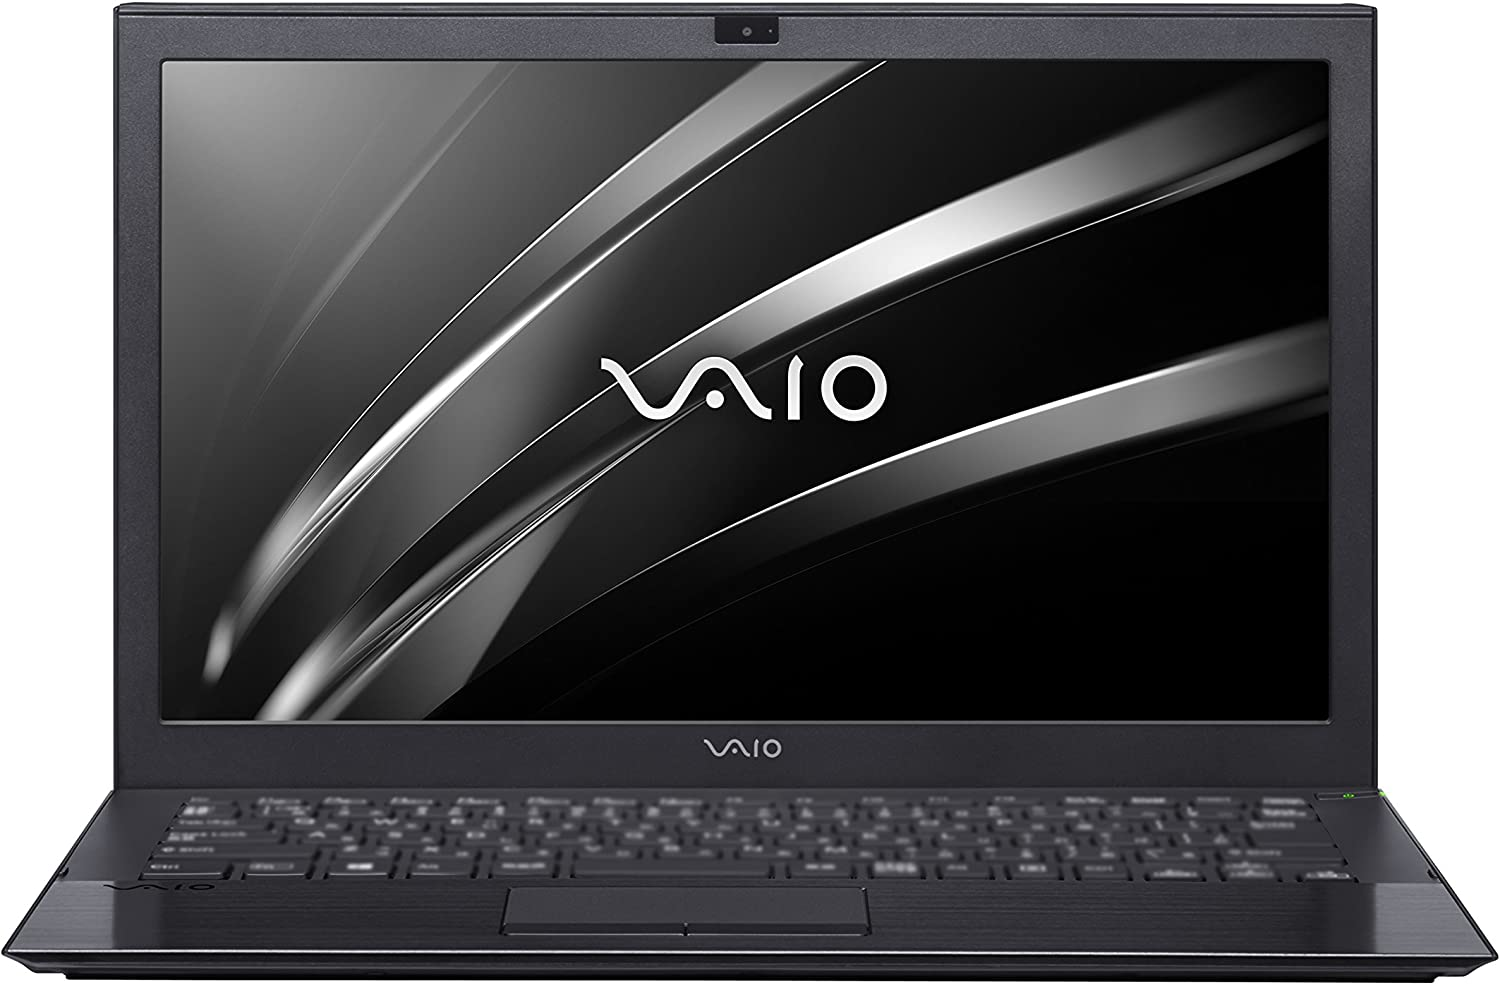 VAIO S Laptop (Intel Core i7-6500U, 8GB Memory, 256GB SSD, Full HD Display, Windows 10 Pro)